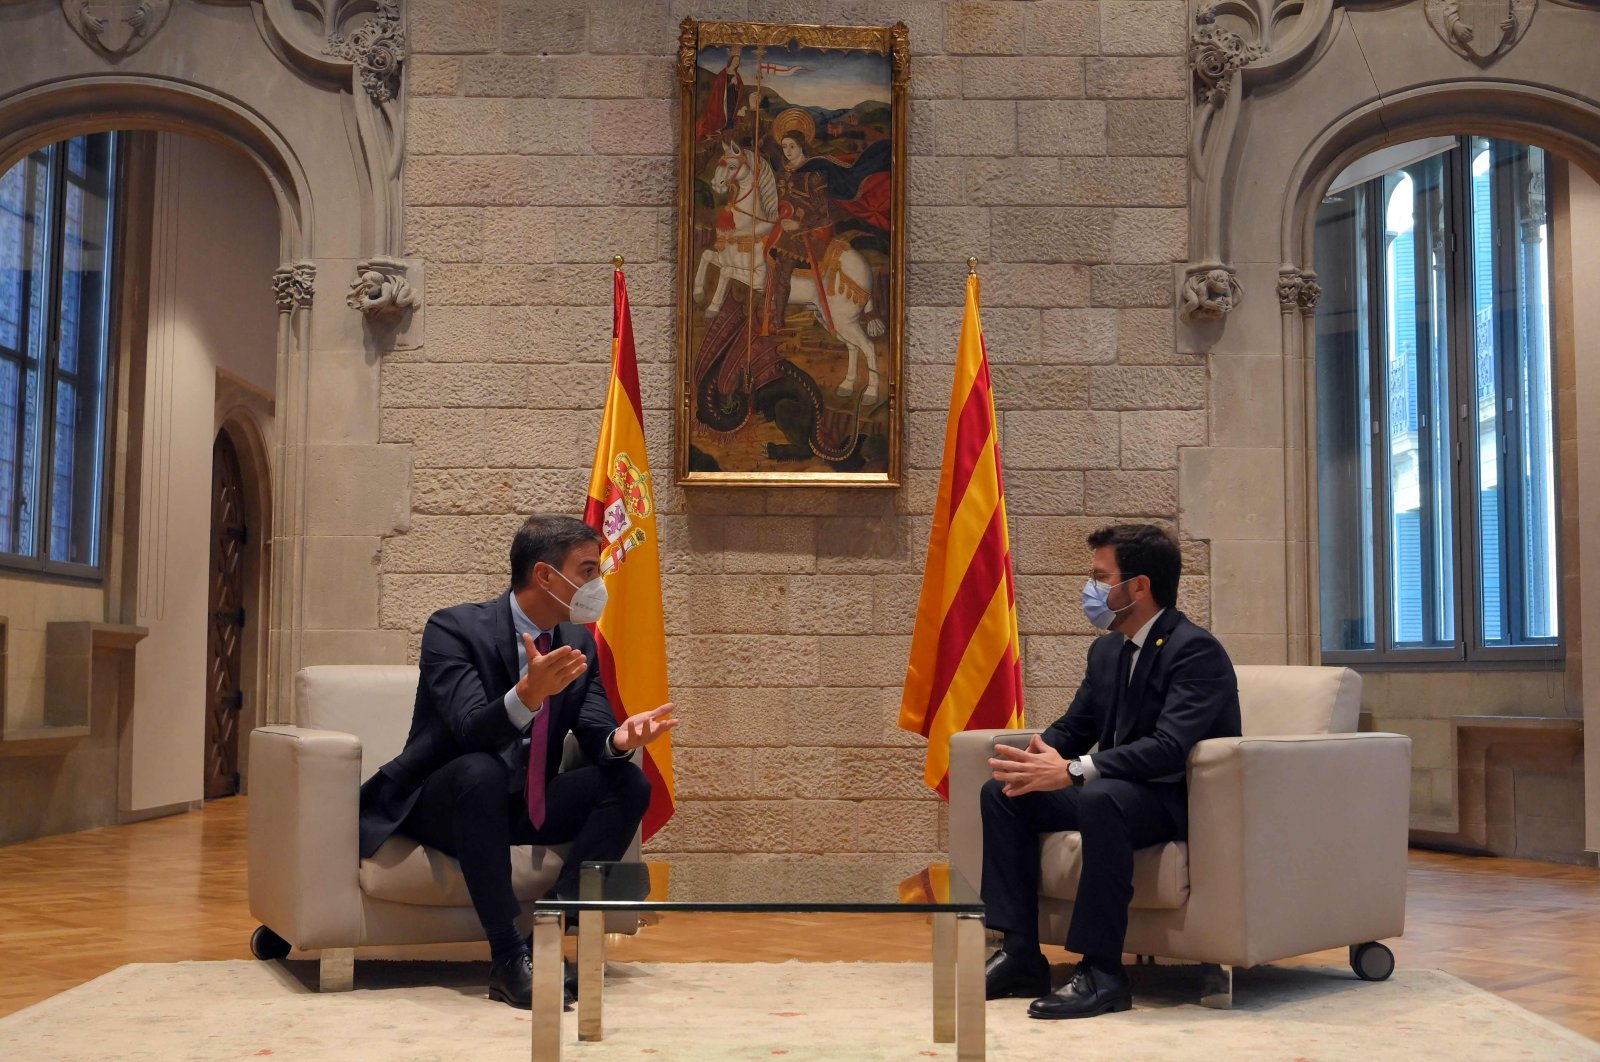 Spanish Prime Minister Pedro Sanchez (L) and Catalonian regional President Pere Aragones talk at the headquarters of the Government of Catalonia in Barcelona, Spain, Sept. 15, 2021. (AP Photo)